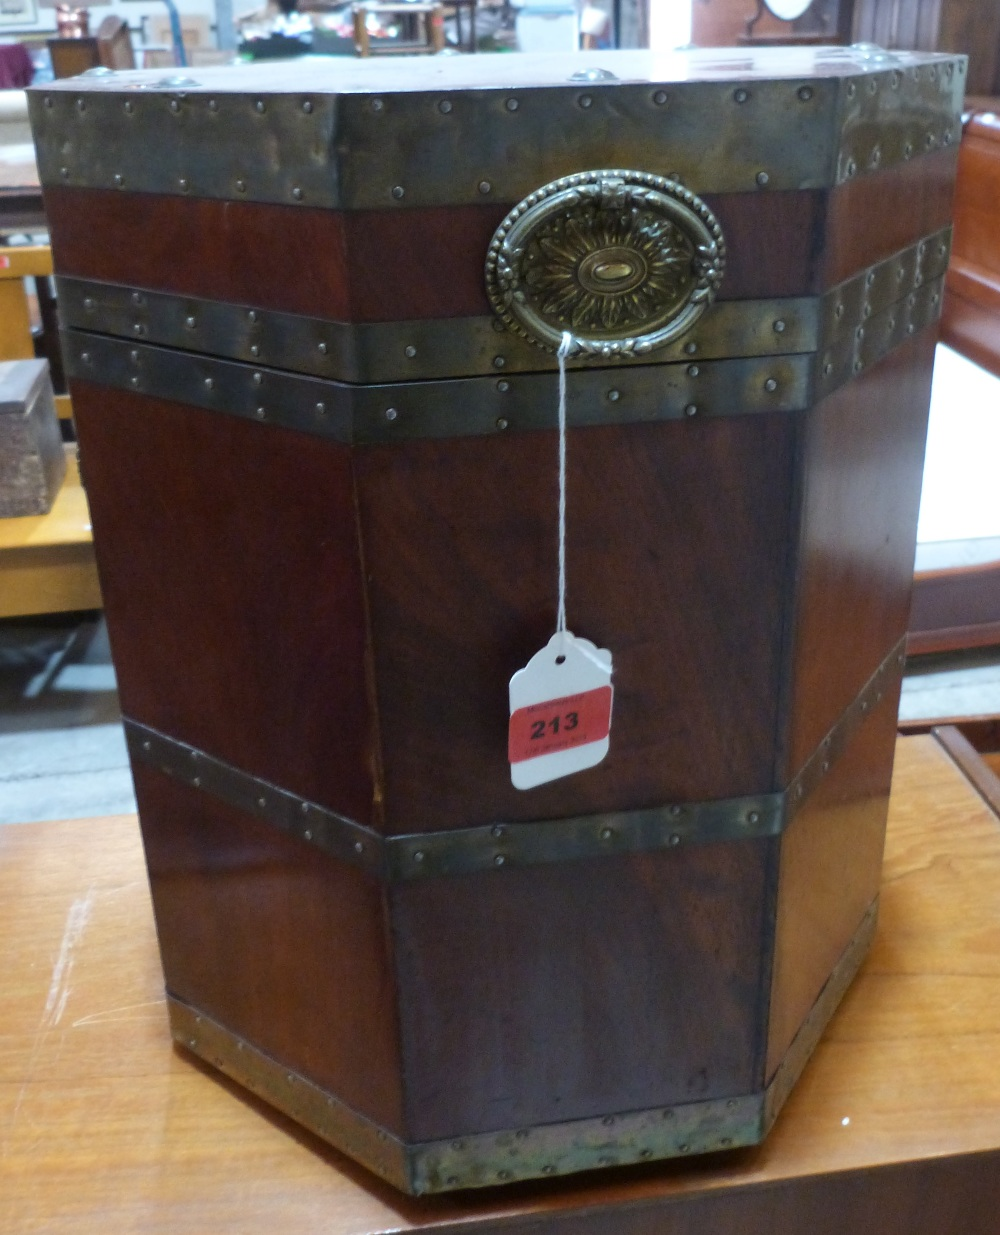 Lot 213 - A mahogany octagonal cellarette with brass straps and ring patera handles. 16 1/2' high